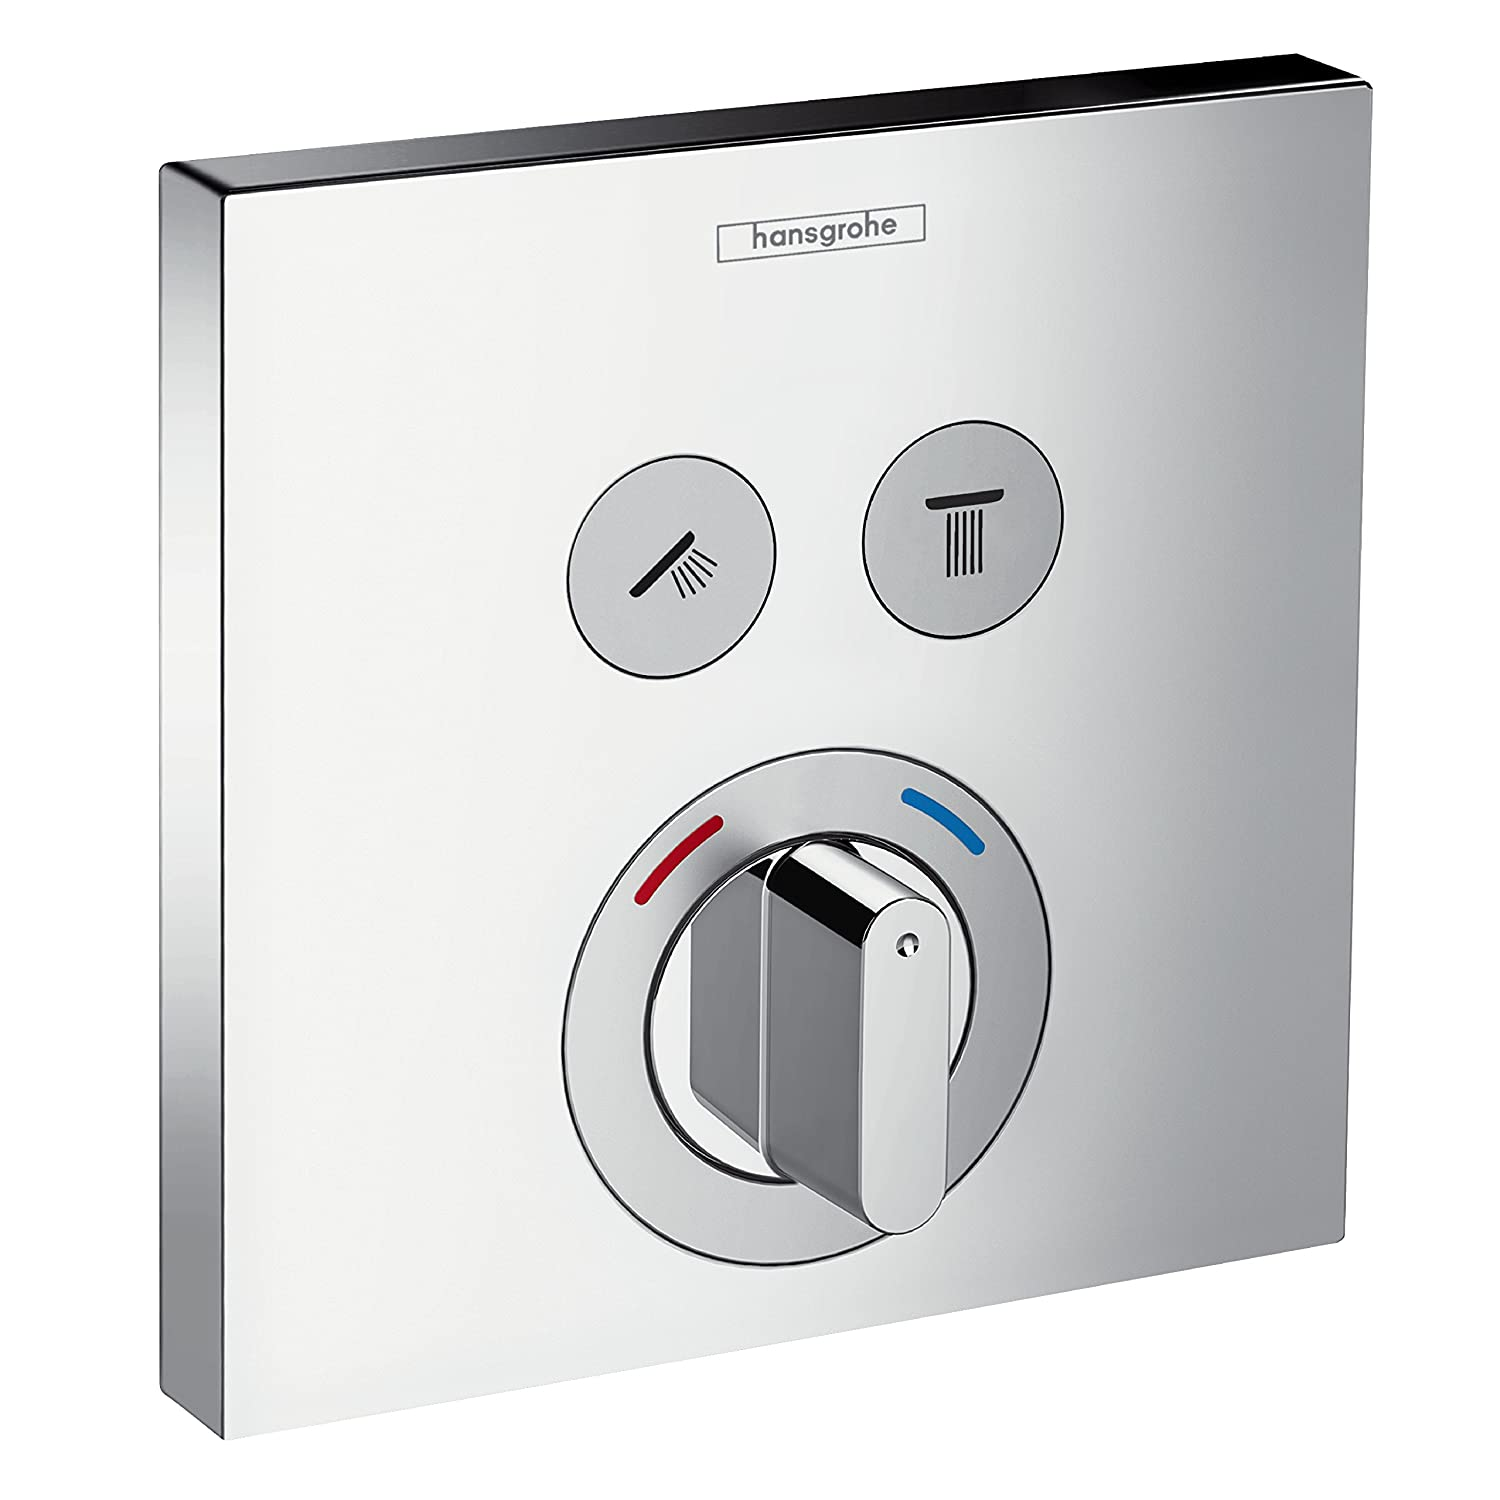 hansgrohe ShowerSelect mixer for 2 outlets, chrome 15768000: Amazon ...